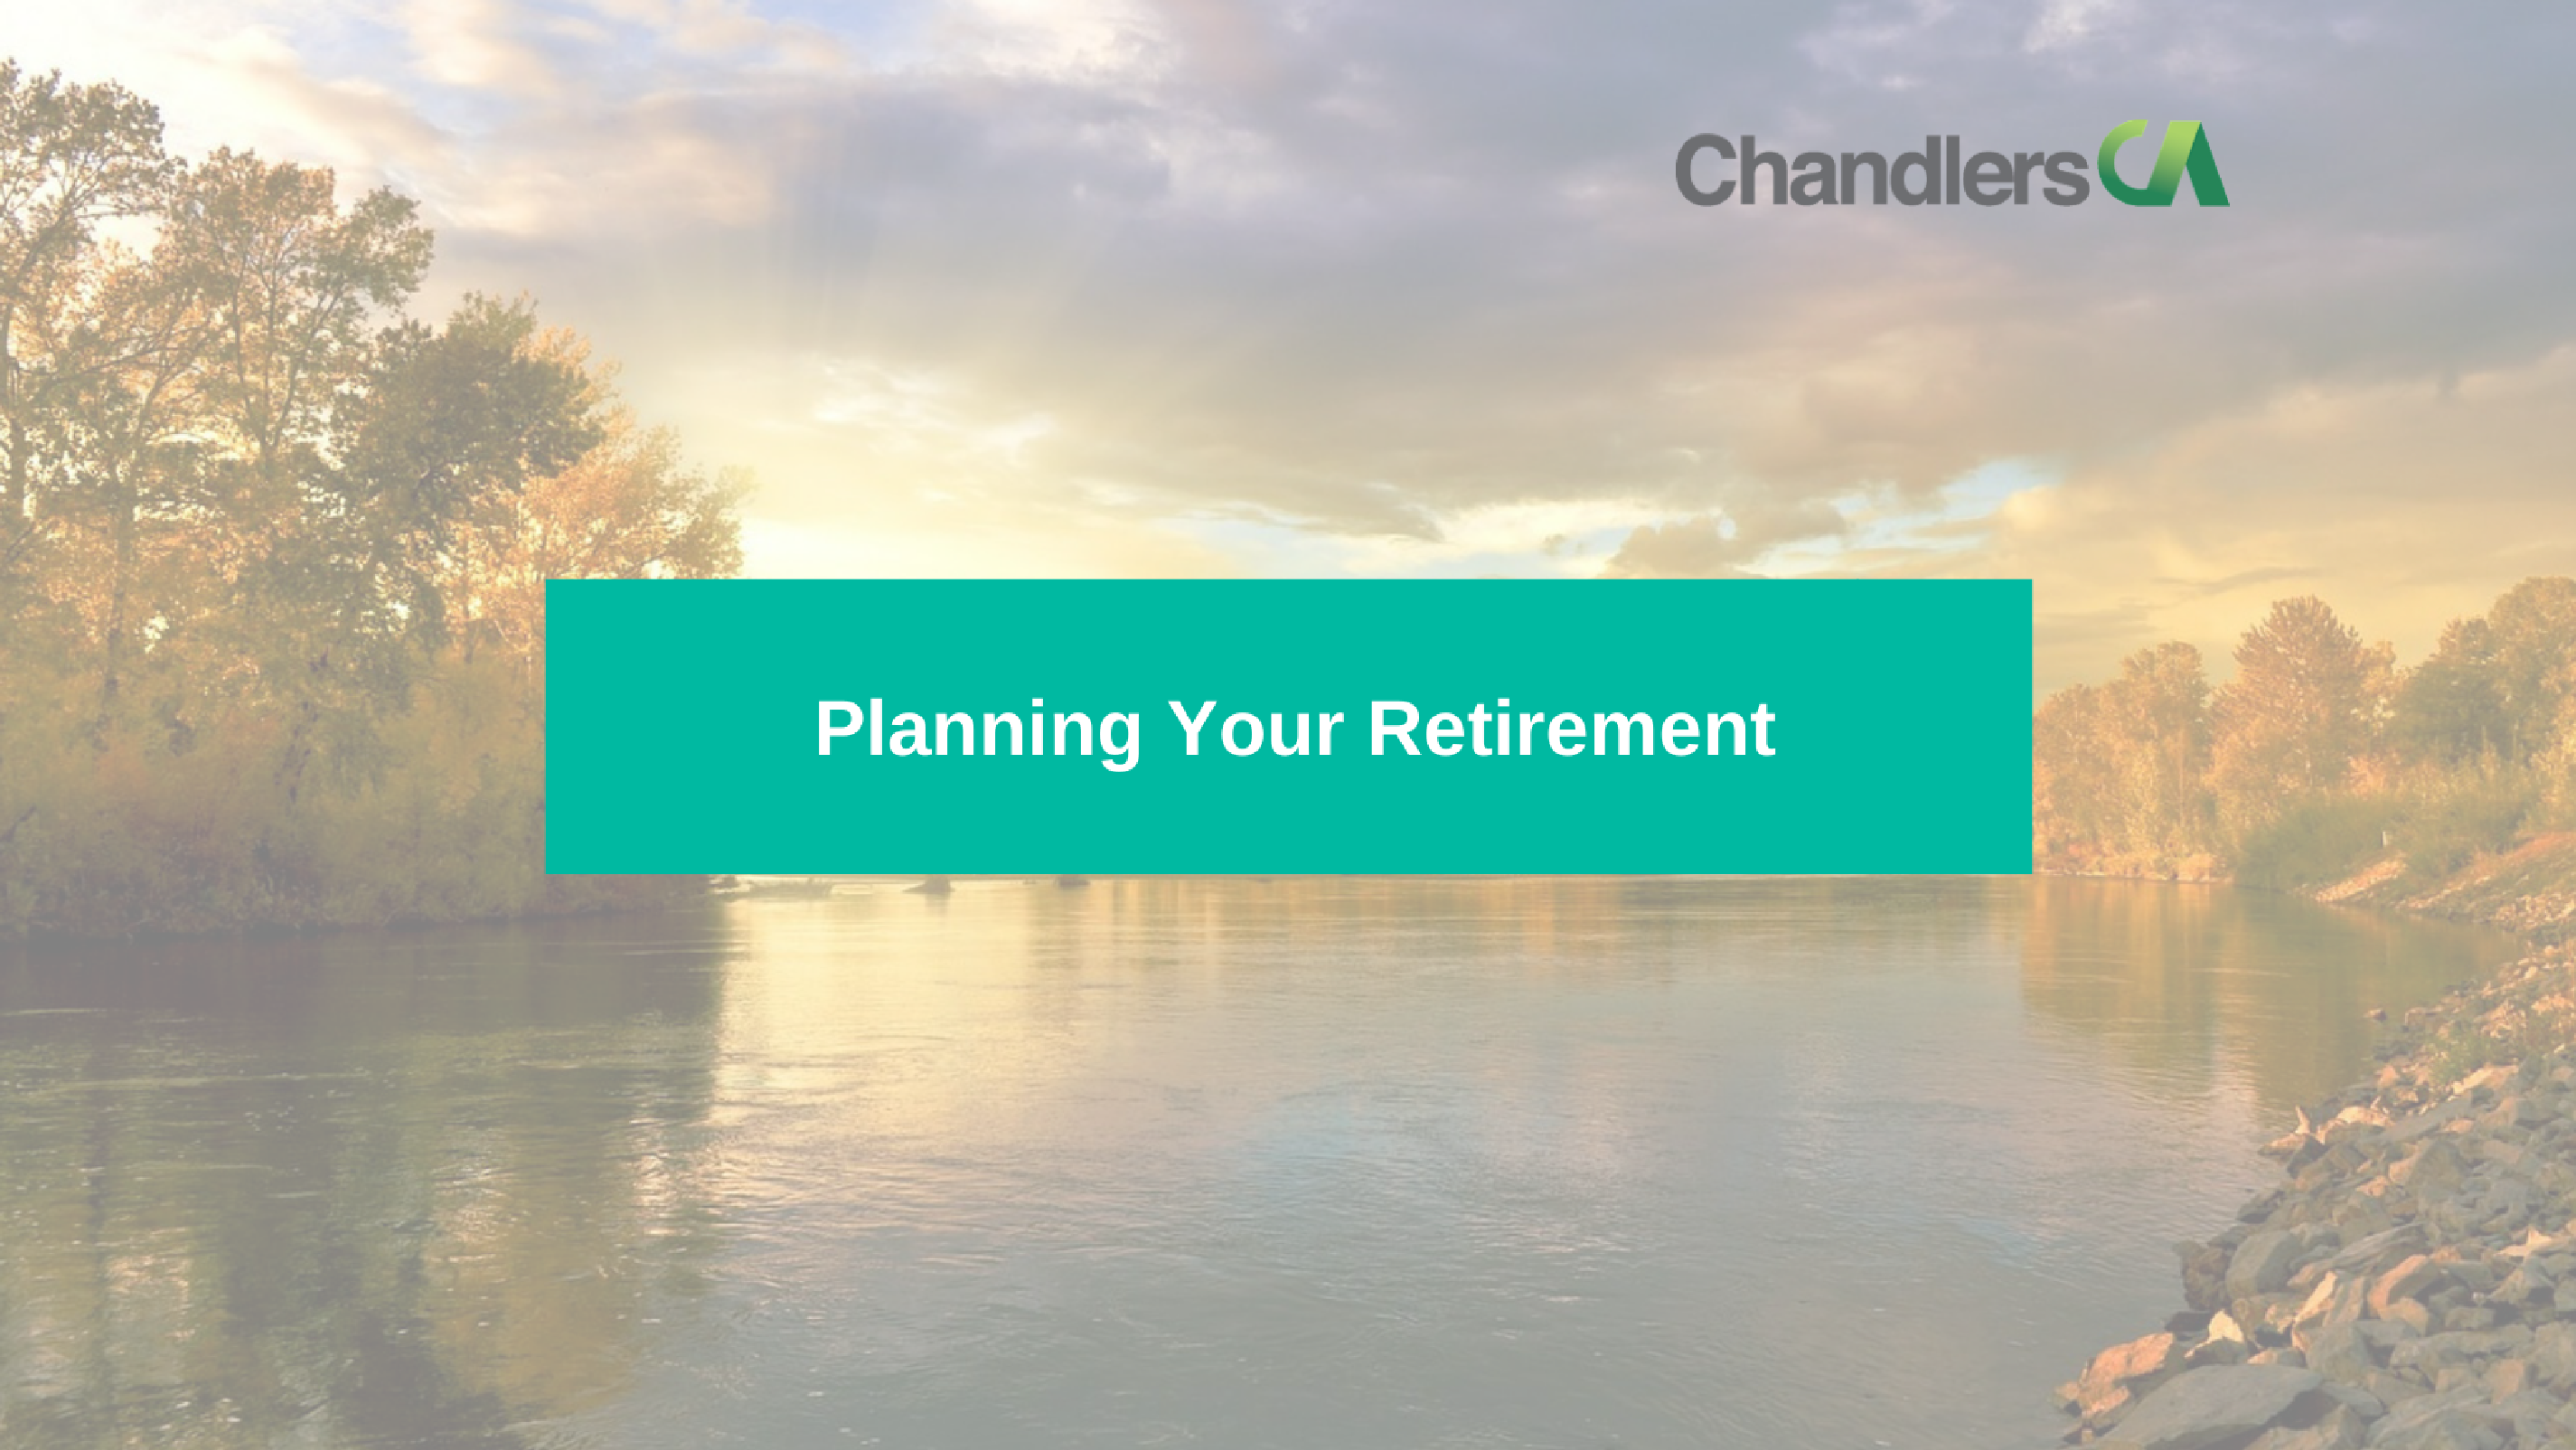 Guide to planning your retirement